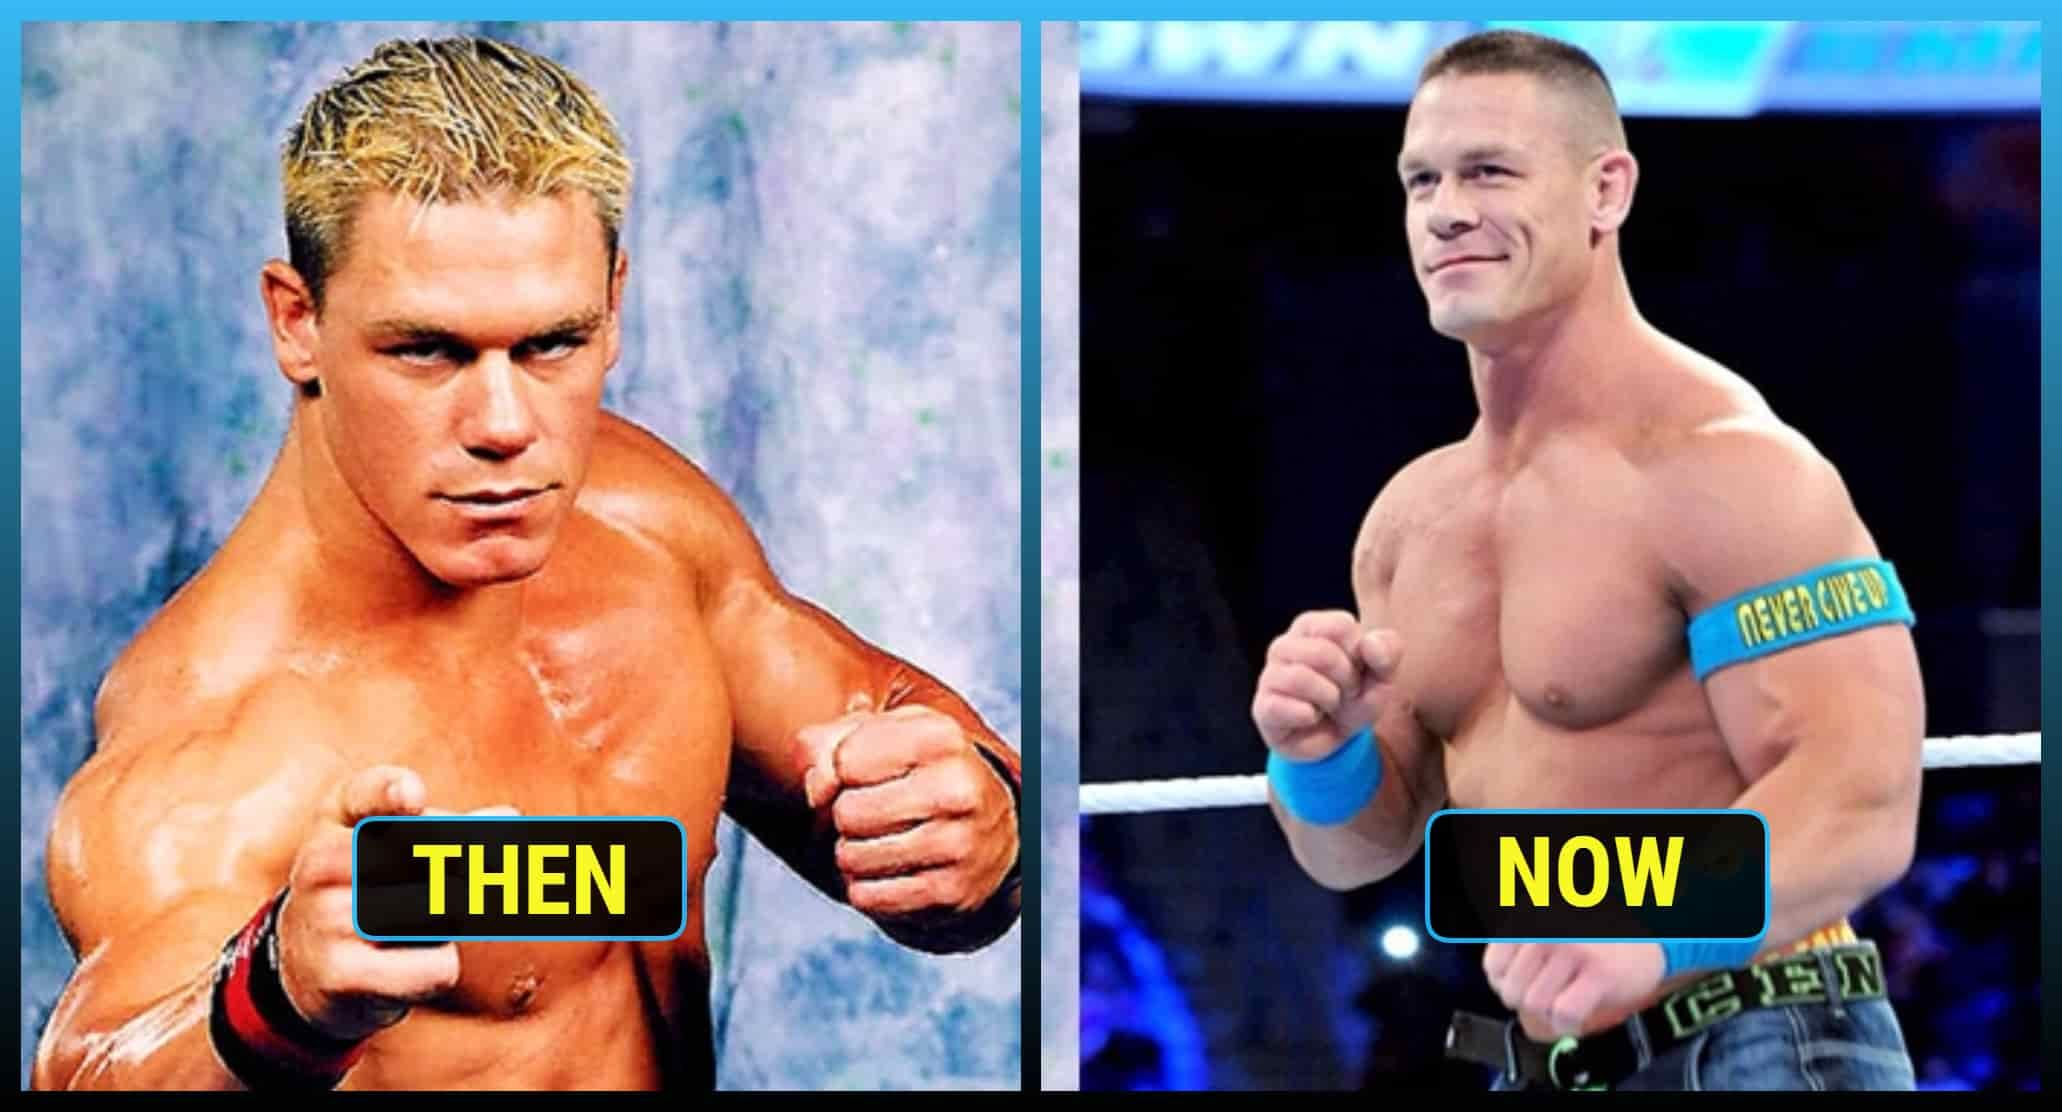 Pictures Of 12 Famous Wwe Superstars Then And Now Most Popular World Wrestling Entertainment Wwe Started As Wrestling Promot Wwe Superstars Superstar Famous